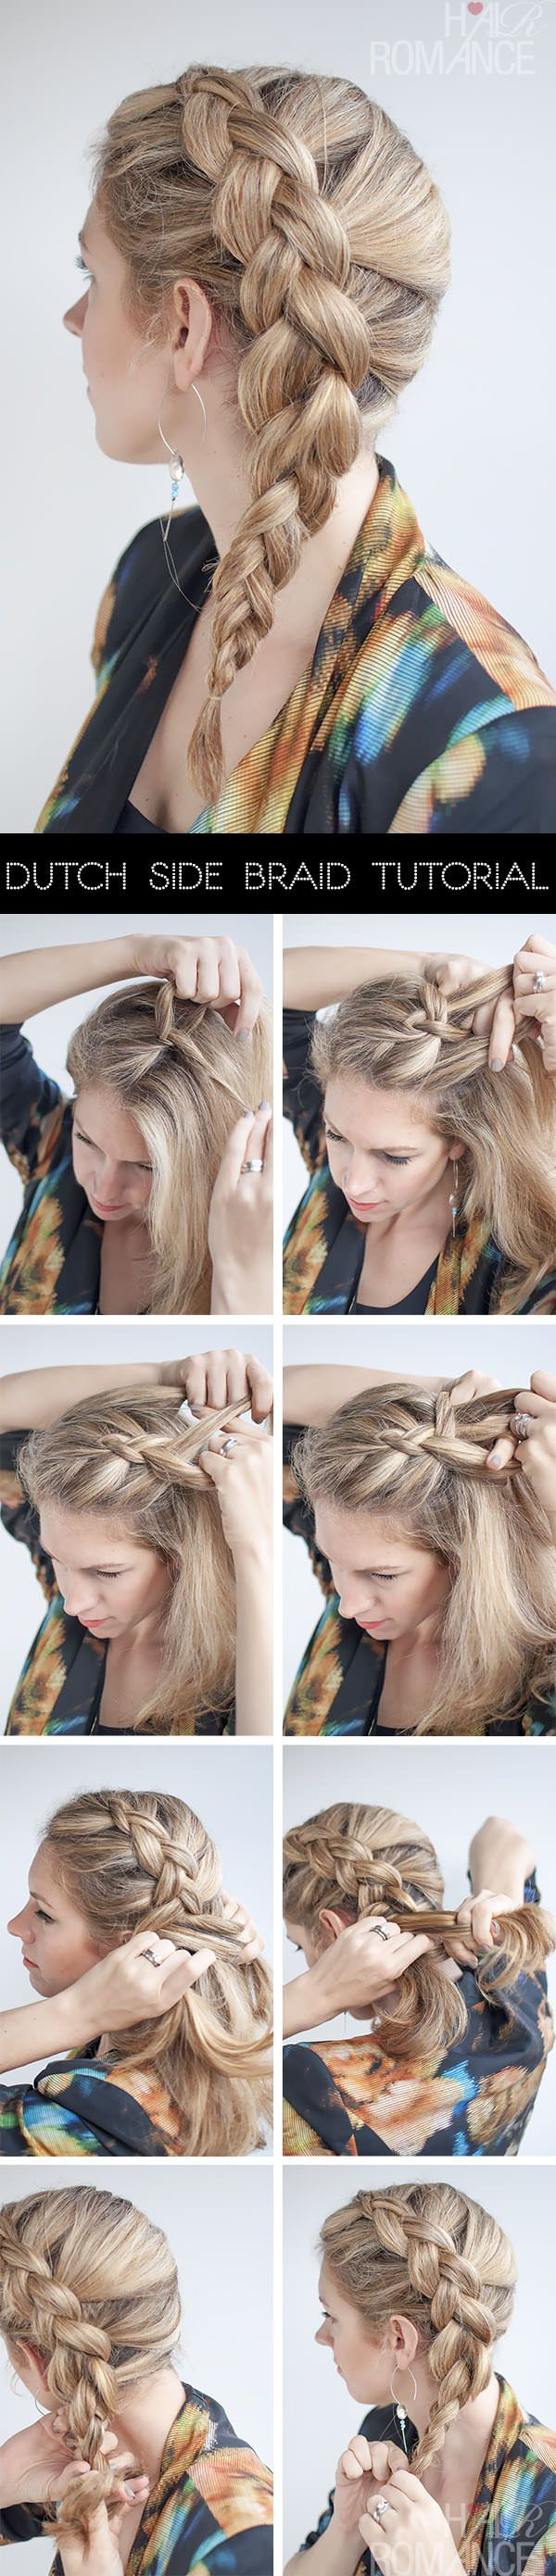 Grab Your Clogs: 5 Easy Dutch Braid Hairstyles